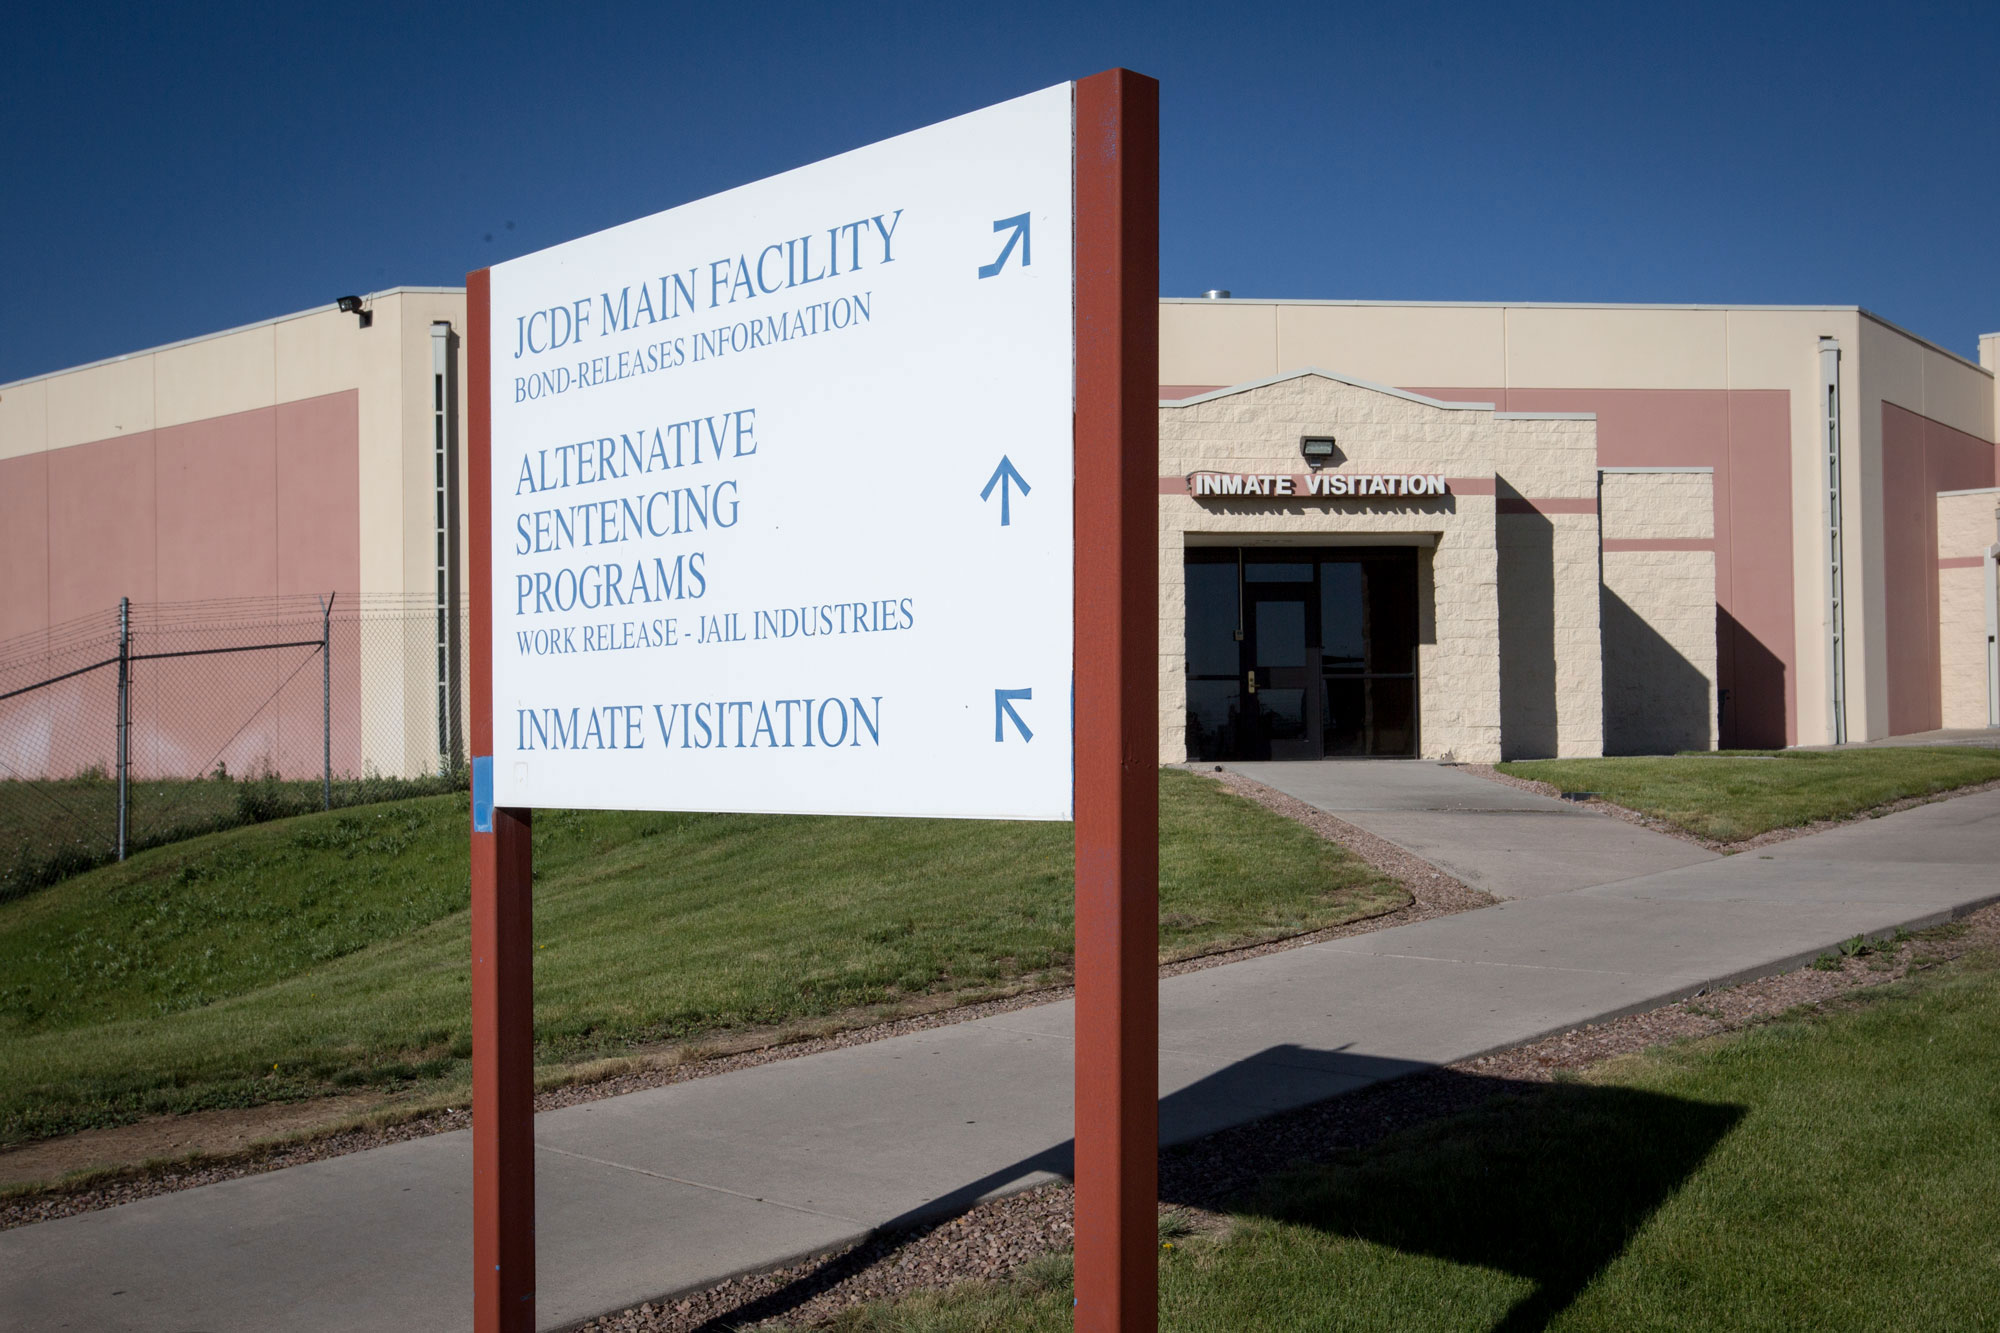 <p>The inmate visitation entrance to the Arapahoe County Dentention Center, June 21, 2019.</p>